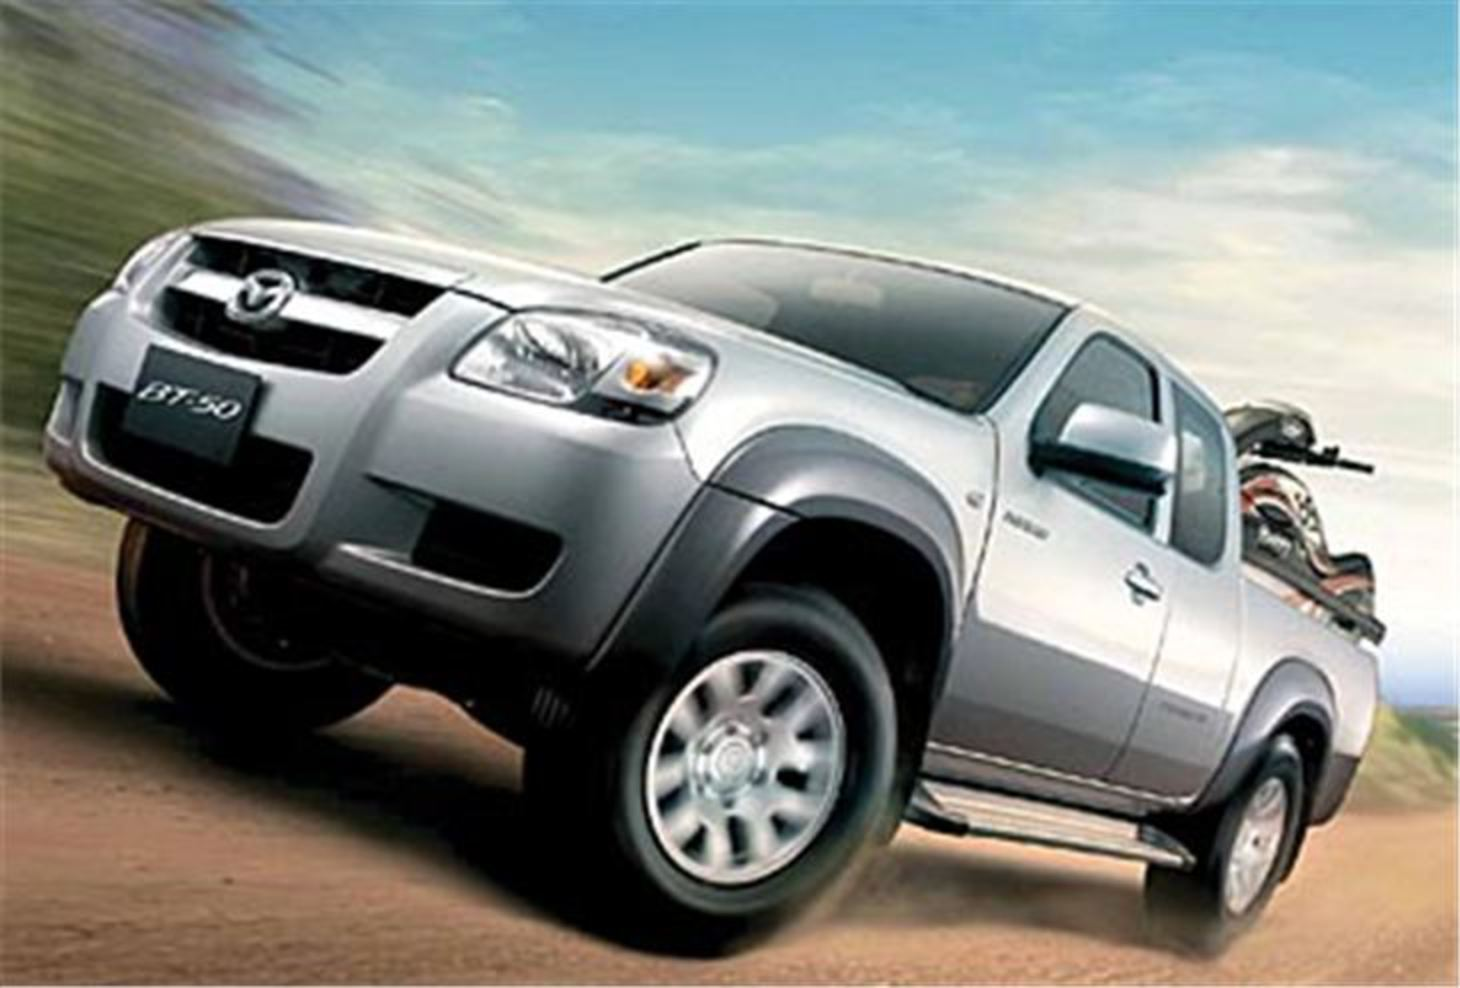 The Mazda BT-50 pick up, originally launched